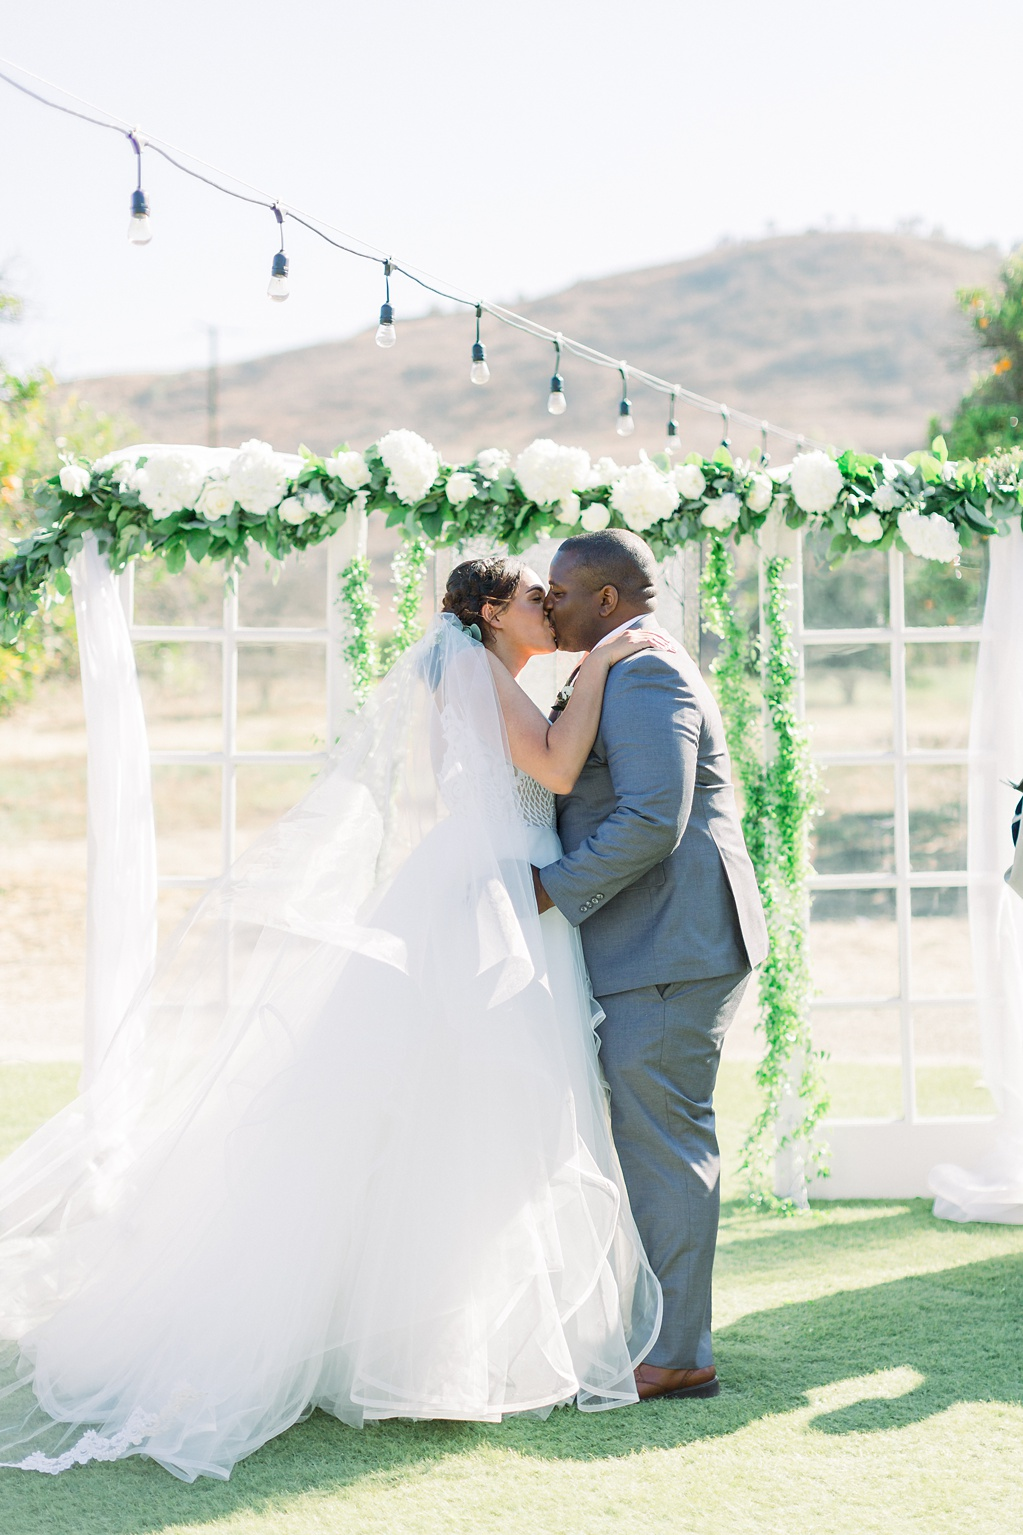 An Organic Floral Inspired Summer Wedding in the open fields of Hamilton Oaks, San Juan Capistrano by Wedding Photographer Madison Ellis (9)